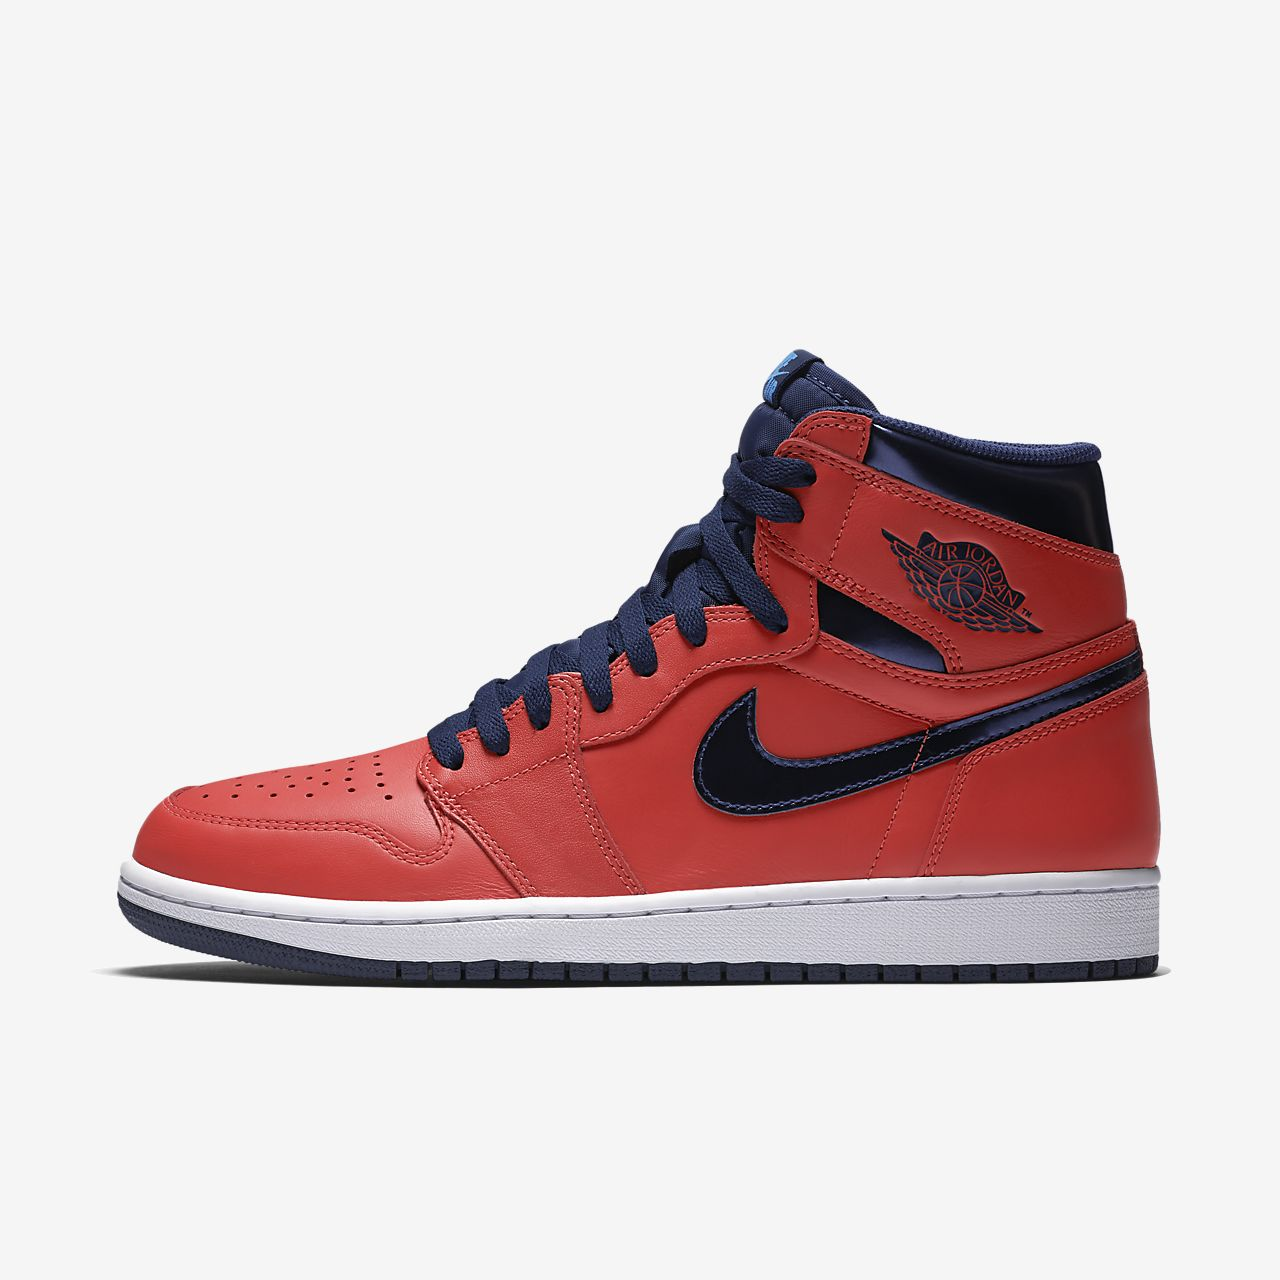 competitive price ea6e5 b0822 Air Jordan 1 Retro High OG Schuh